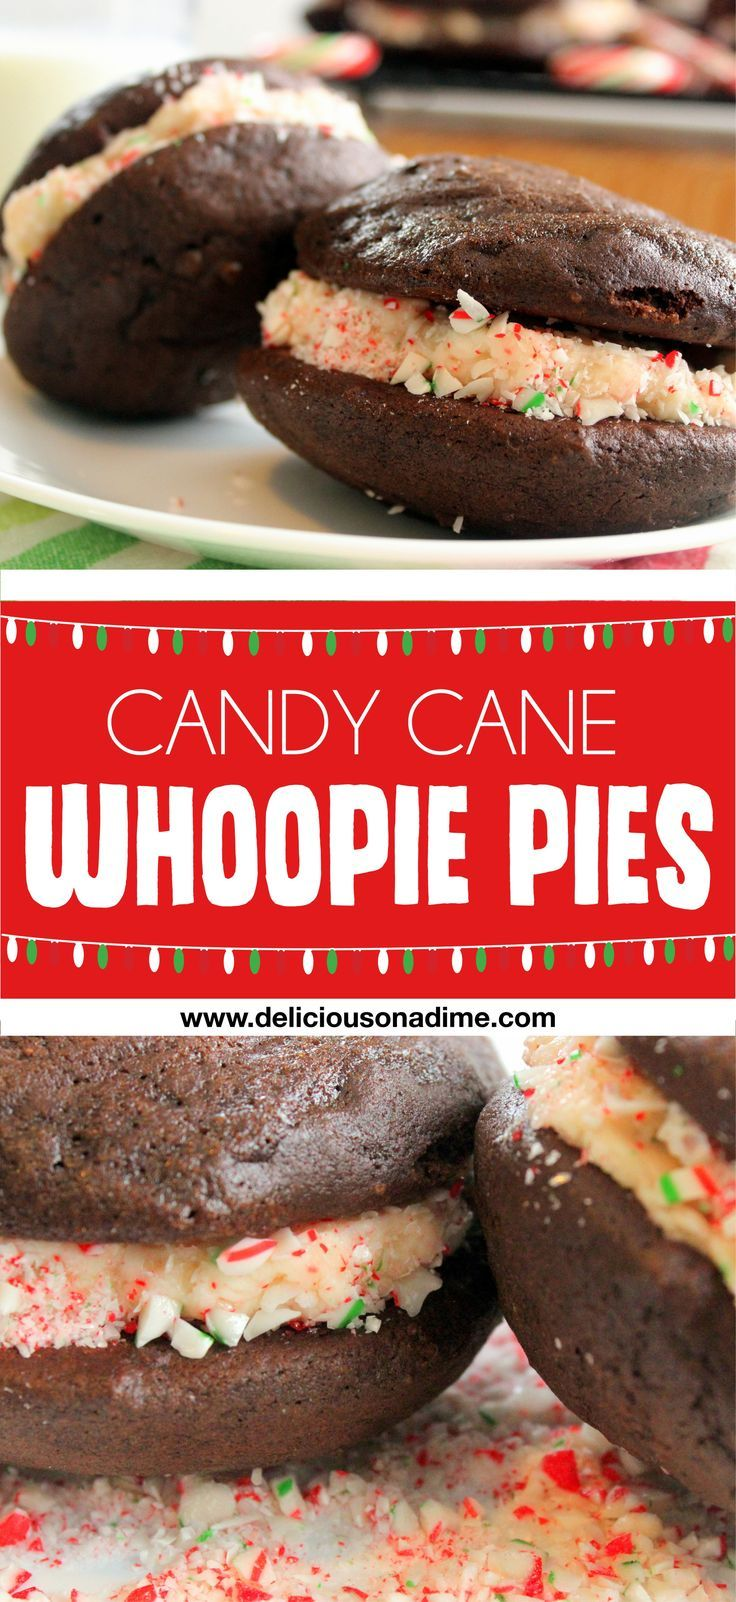 Candy Cane Whoopie Pies - These Candy Cane Whoopie Pies are soft and fluffy, with candy cane icing that's a little minty and a little sweet, perfect for a tasty winter treat!